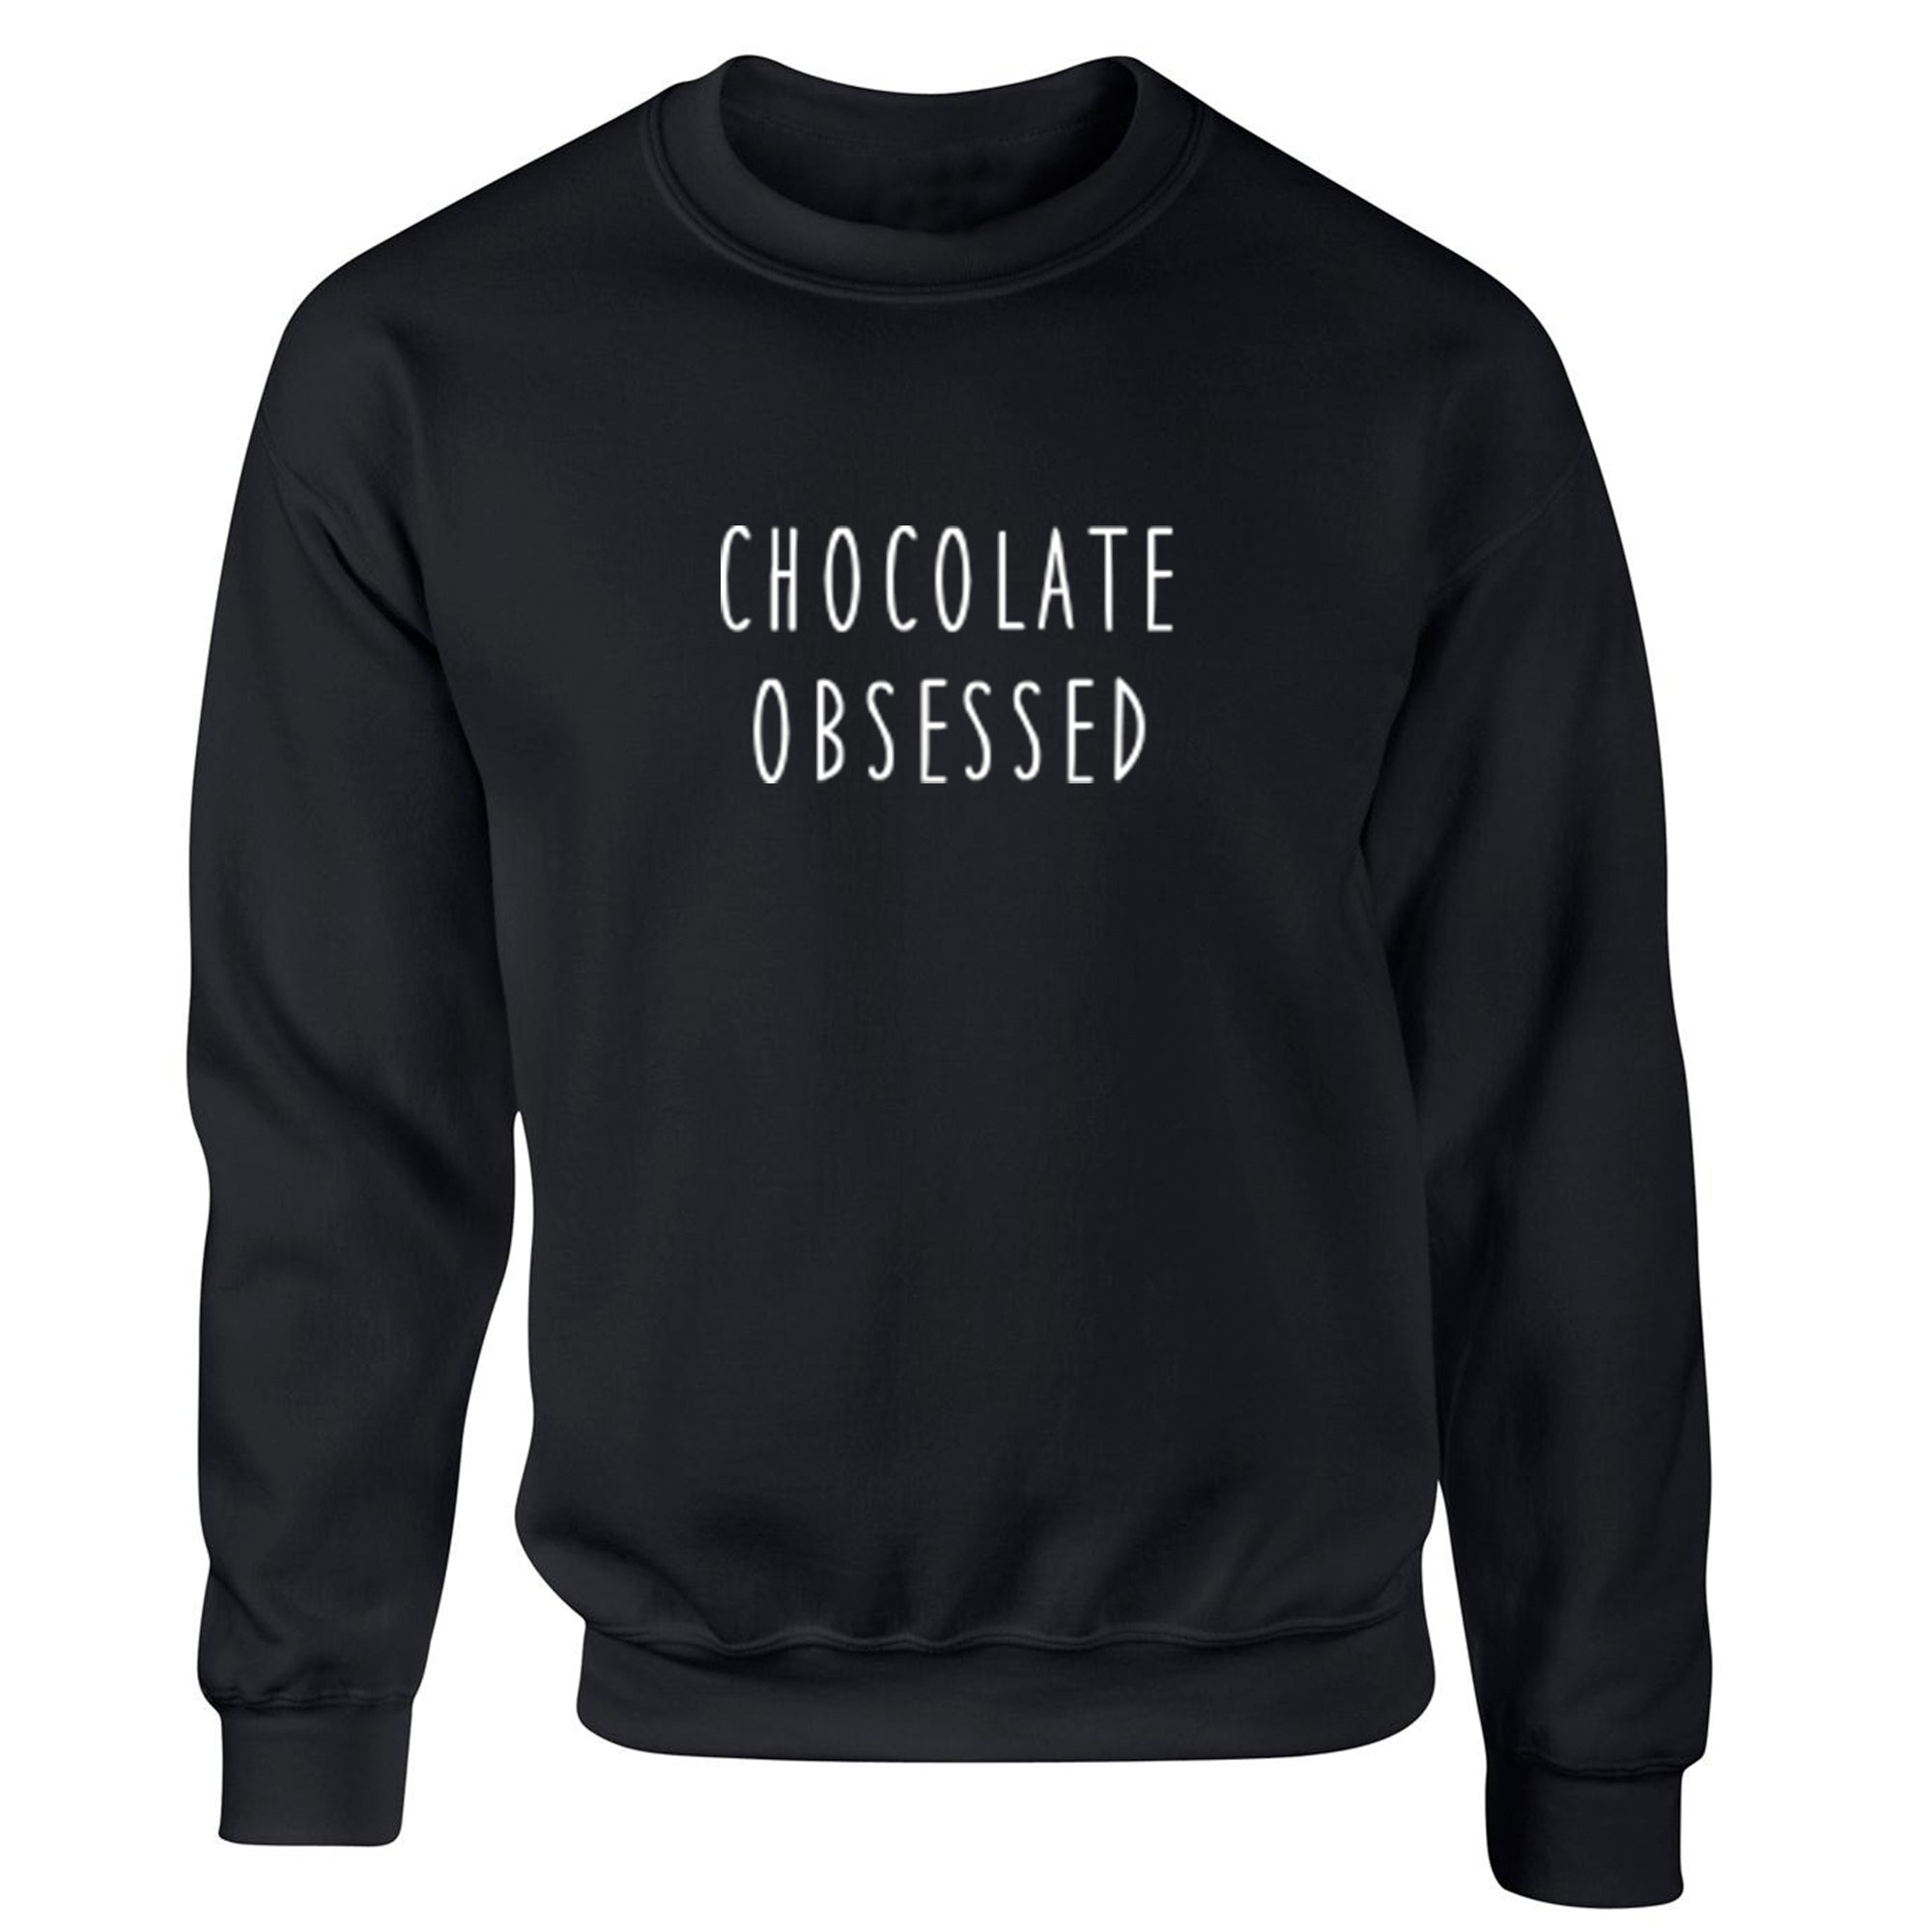 Chocolate Obsessed Unisex Jumper S1078 - Illustrated Identity Ltd.